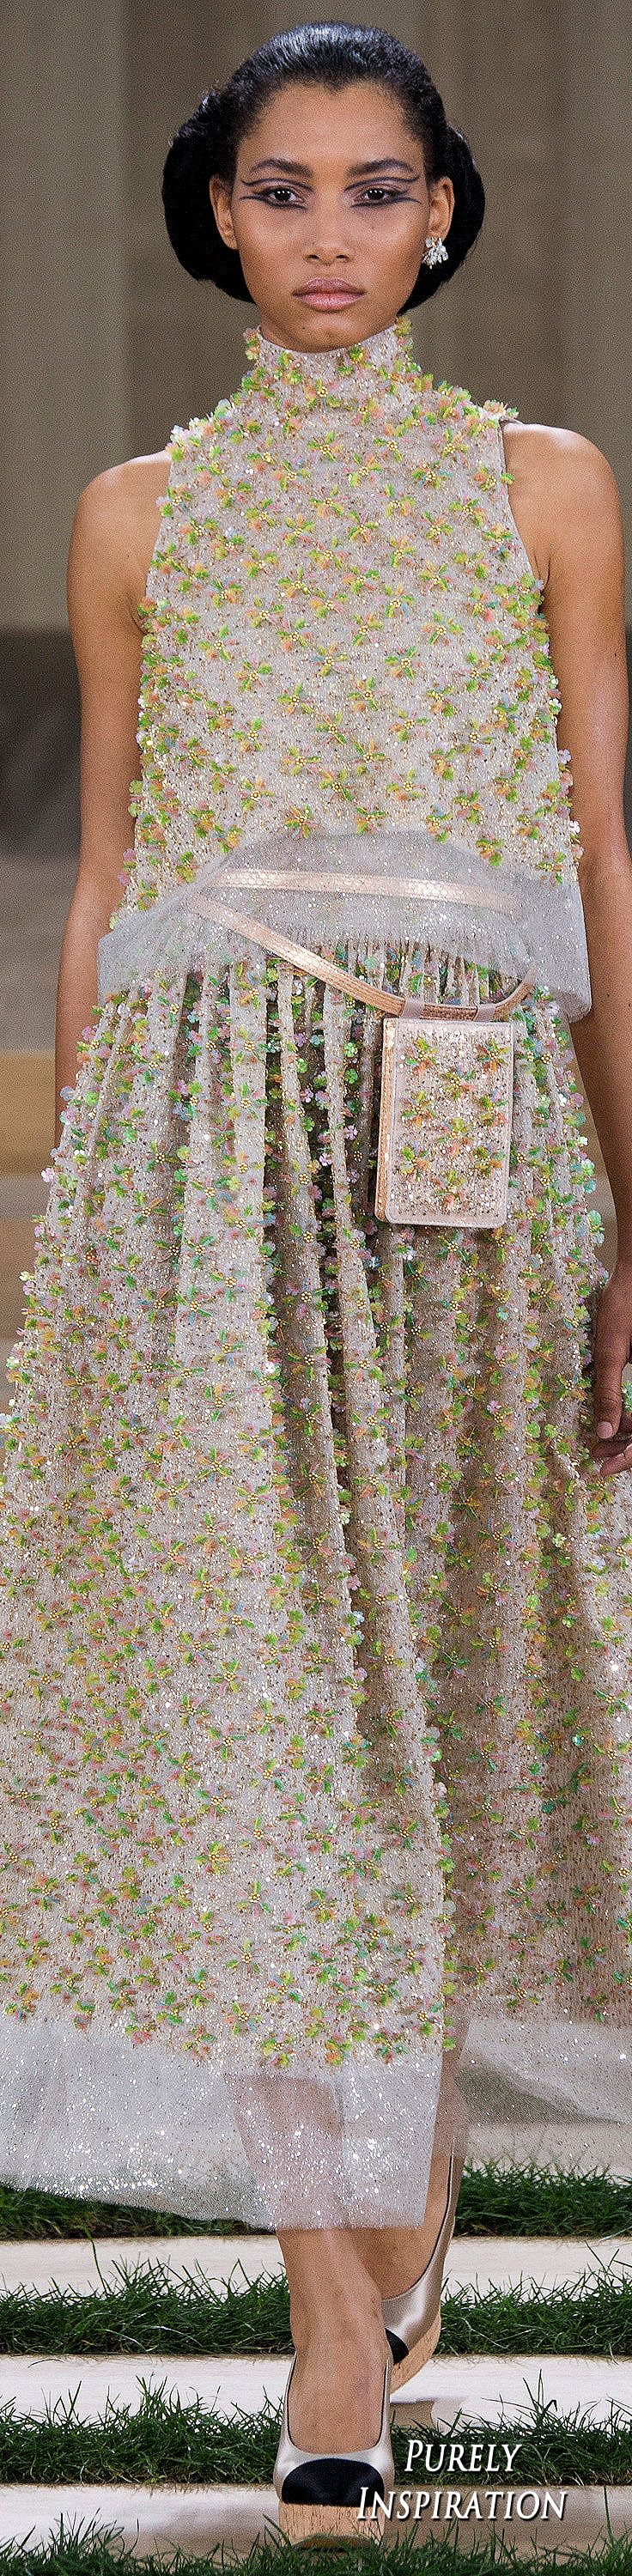 Chanel Spring 2016 Haute Couture | Purely Inspiration